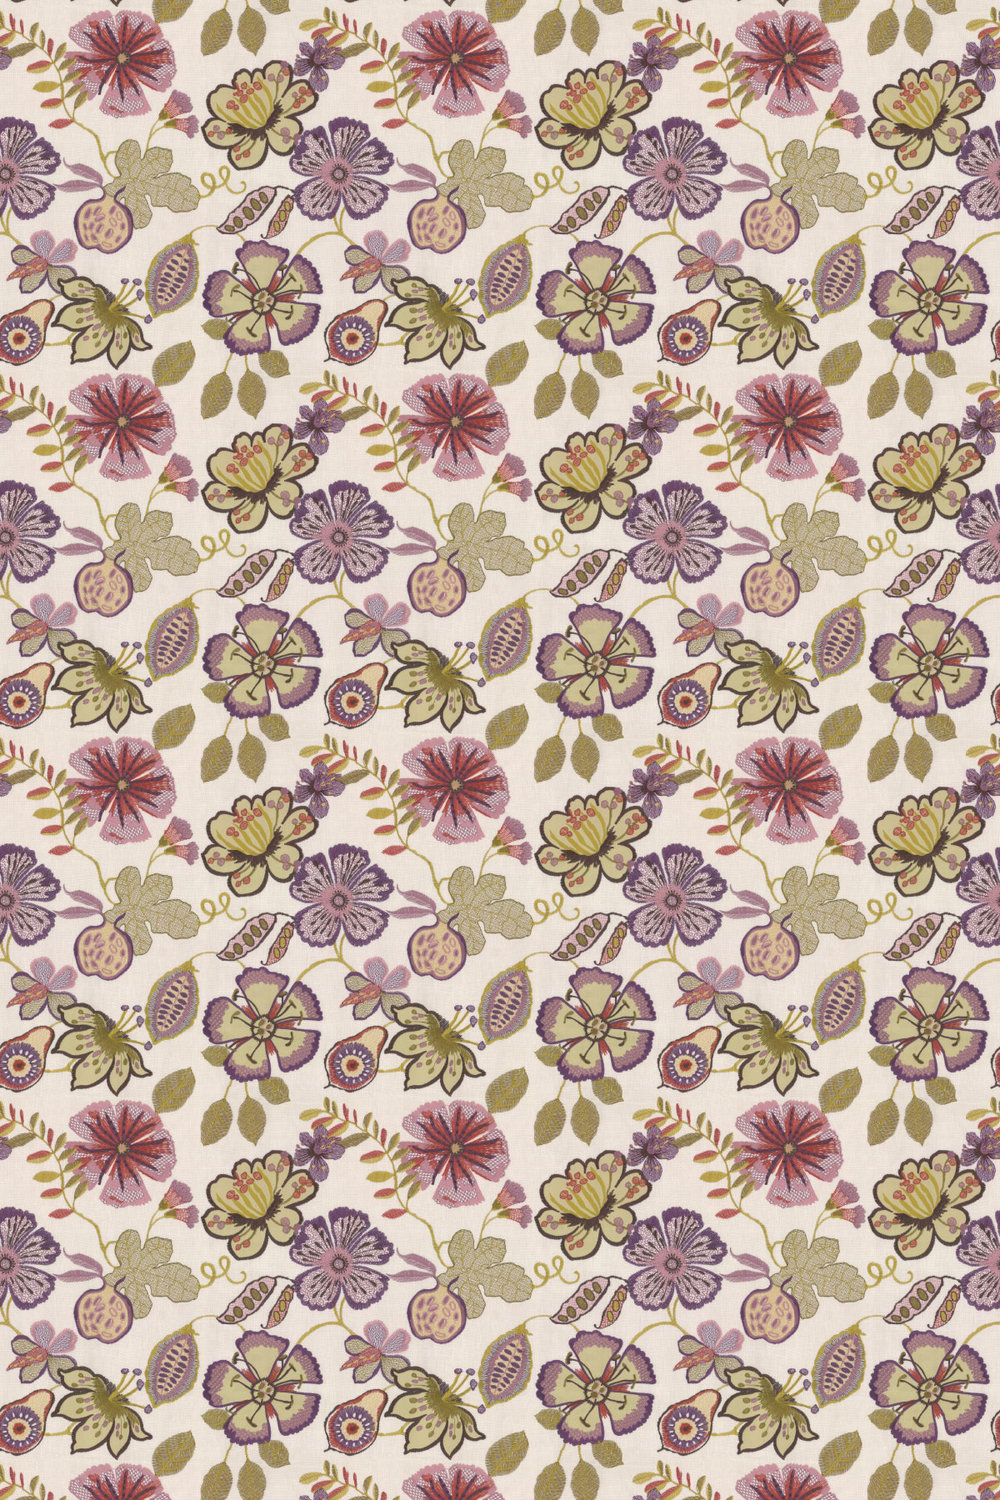 Passion flower Fabric - Orchid - by Prestigious